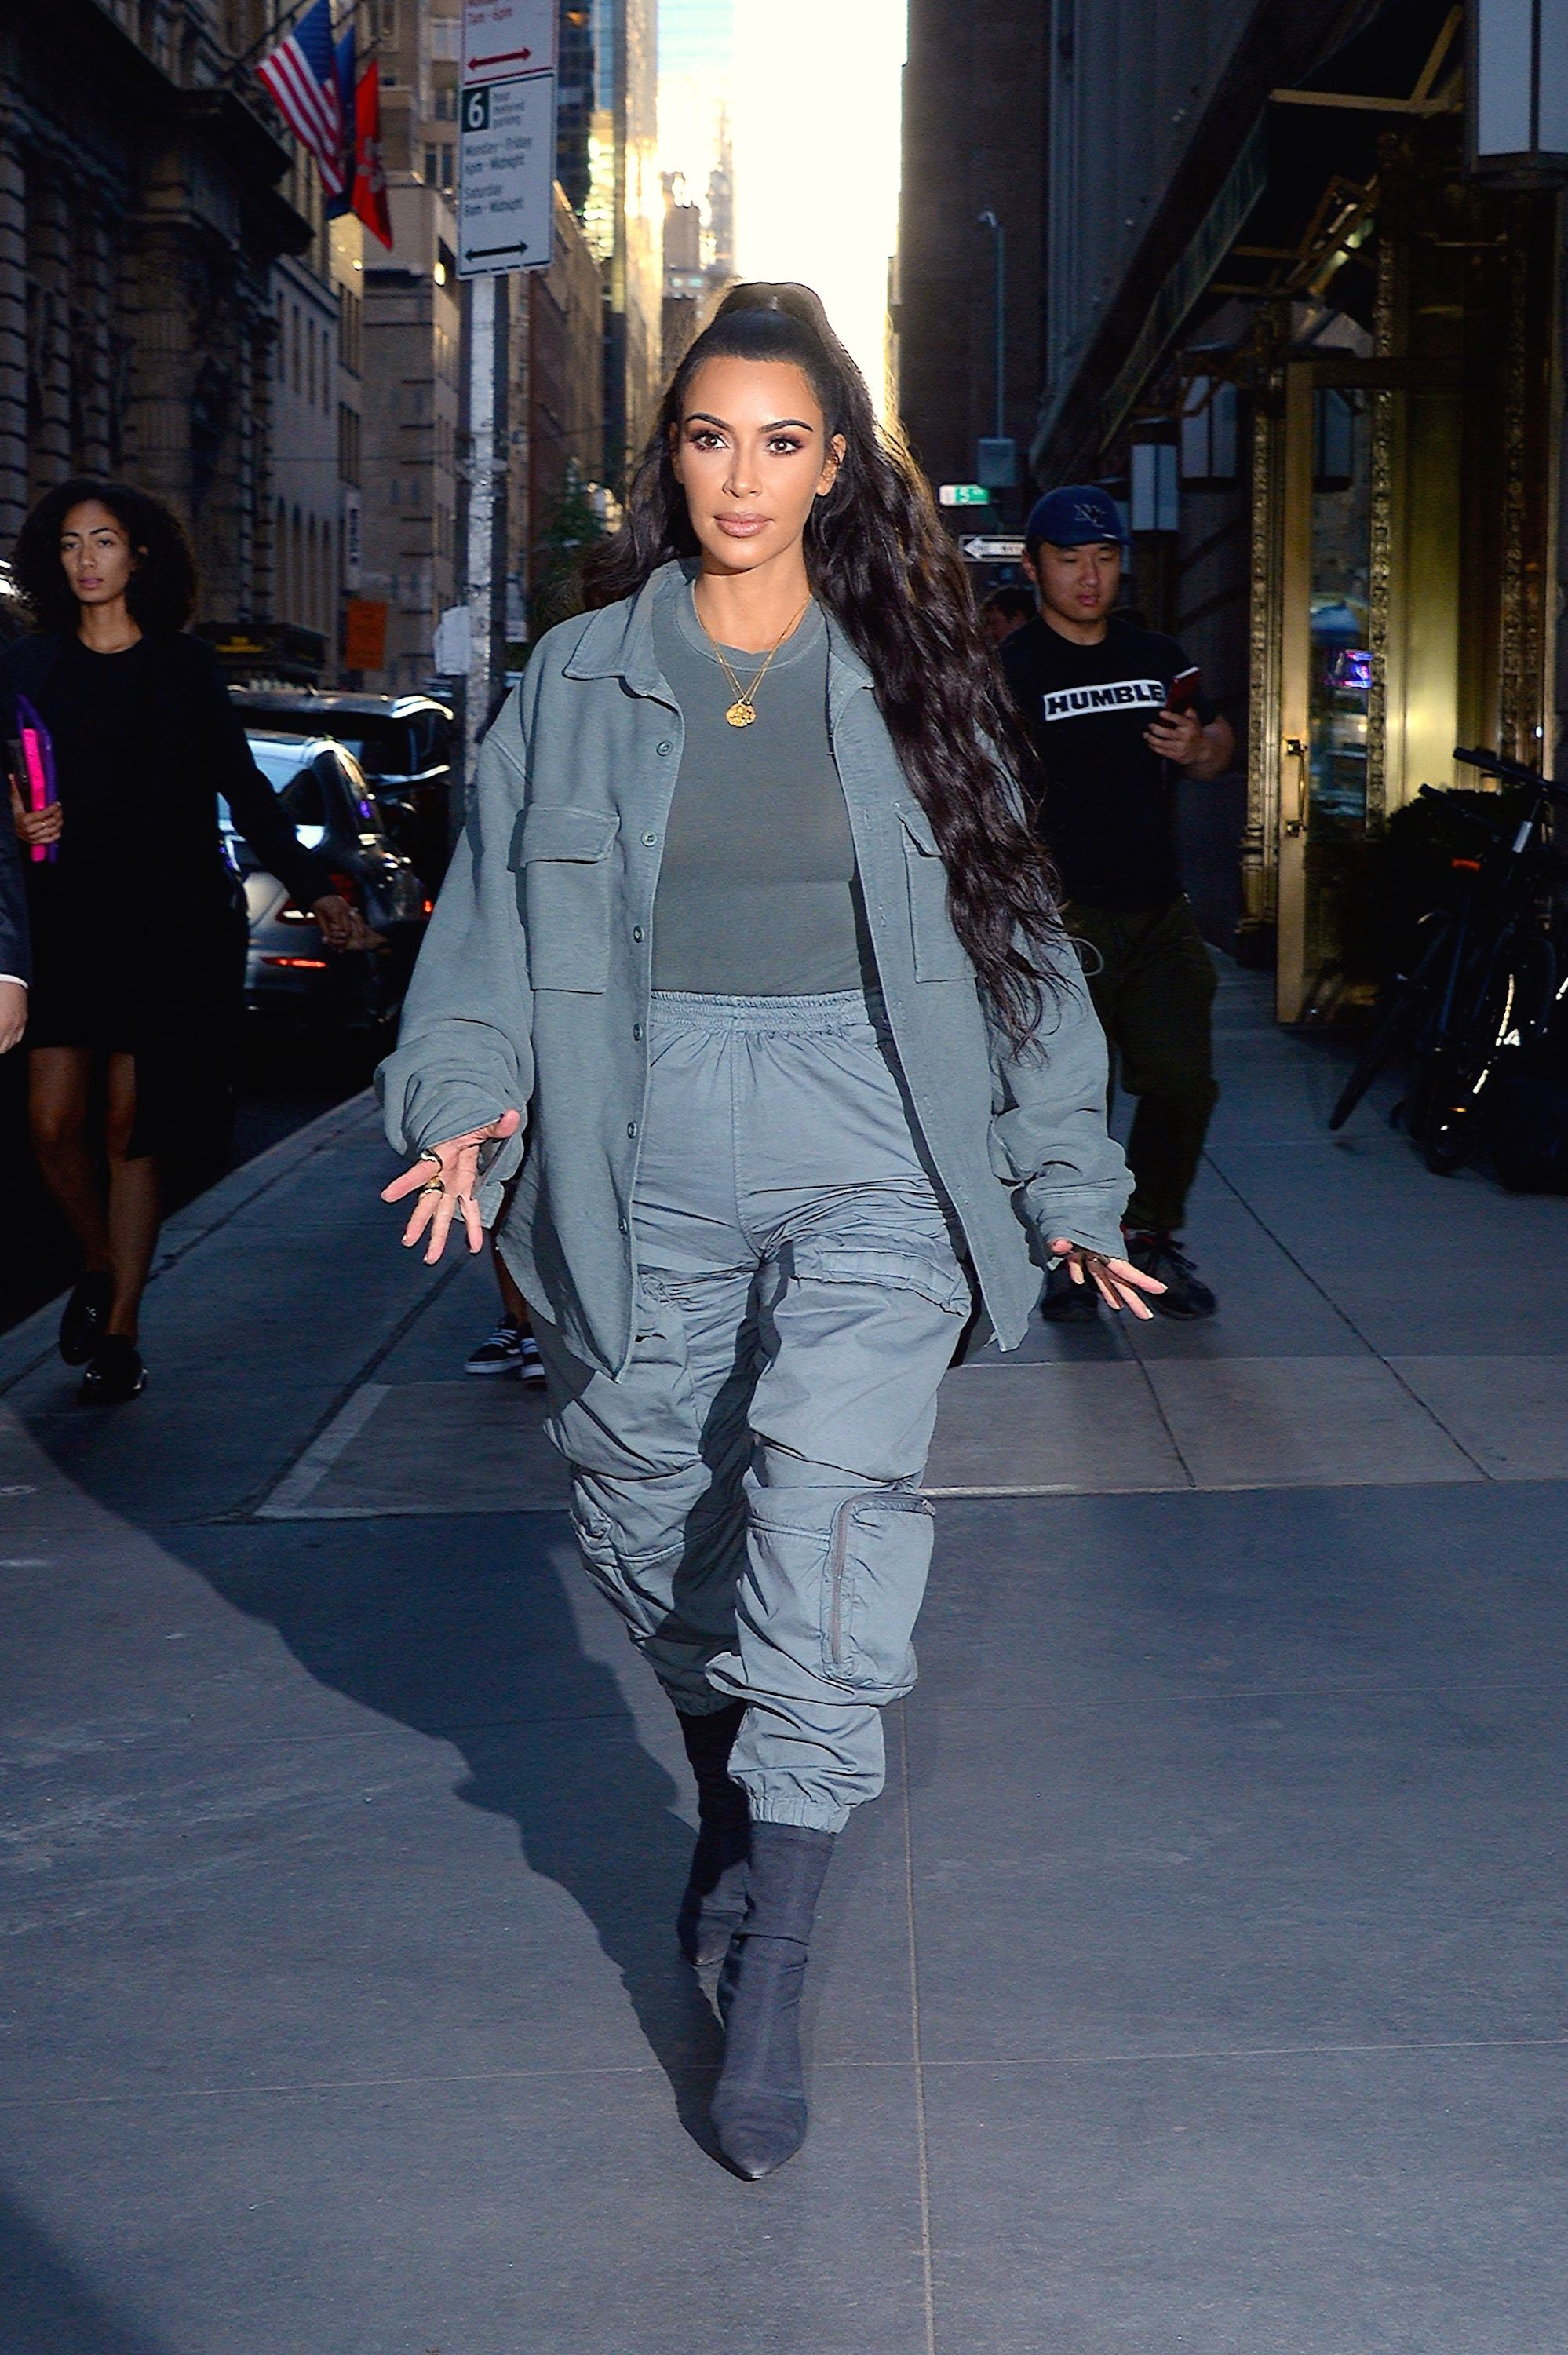 834e507770bcd Kim Kardashian Stars In The Latest Yeezy Campaign Nothing But